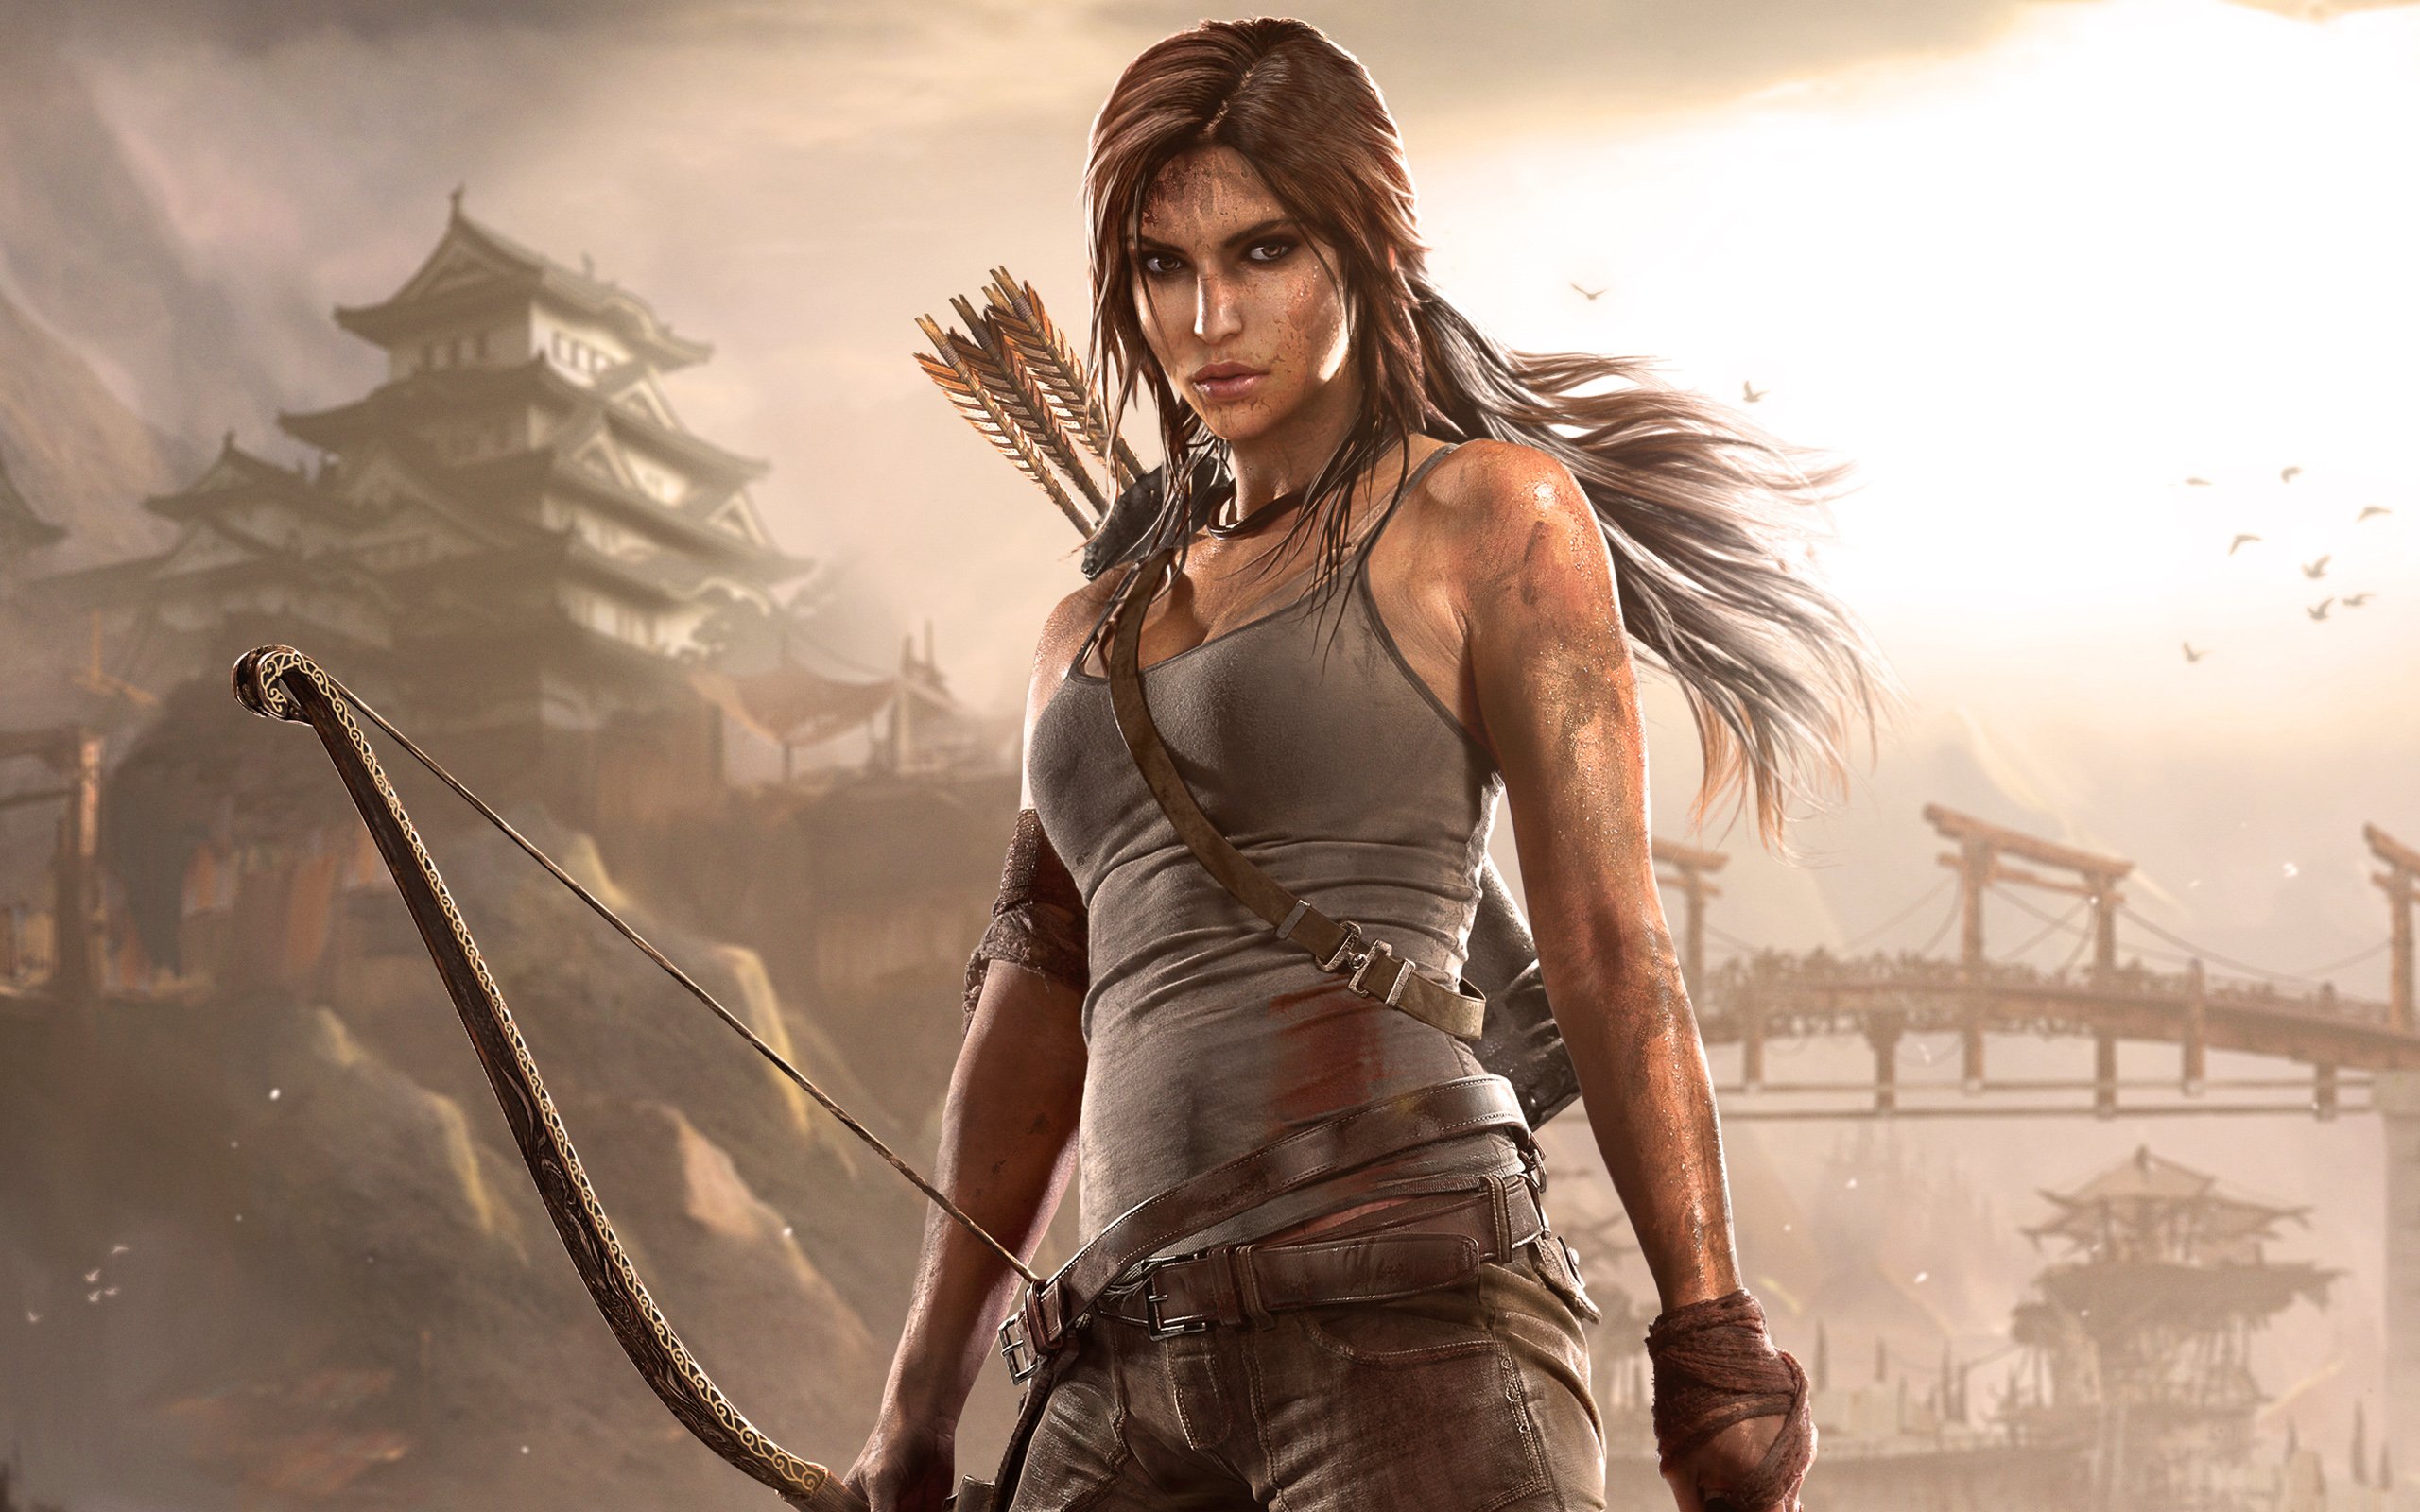 Image result for Lara Croft game character image